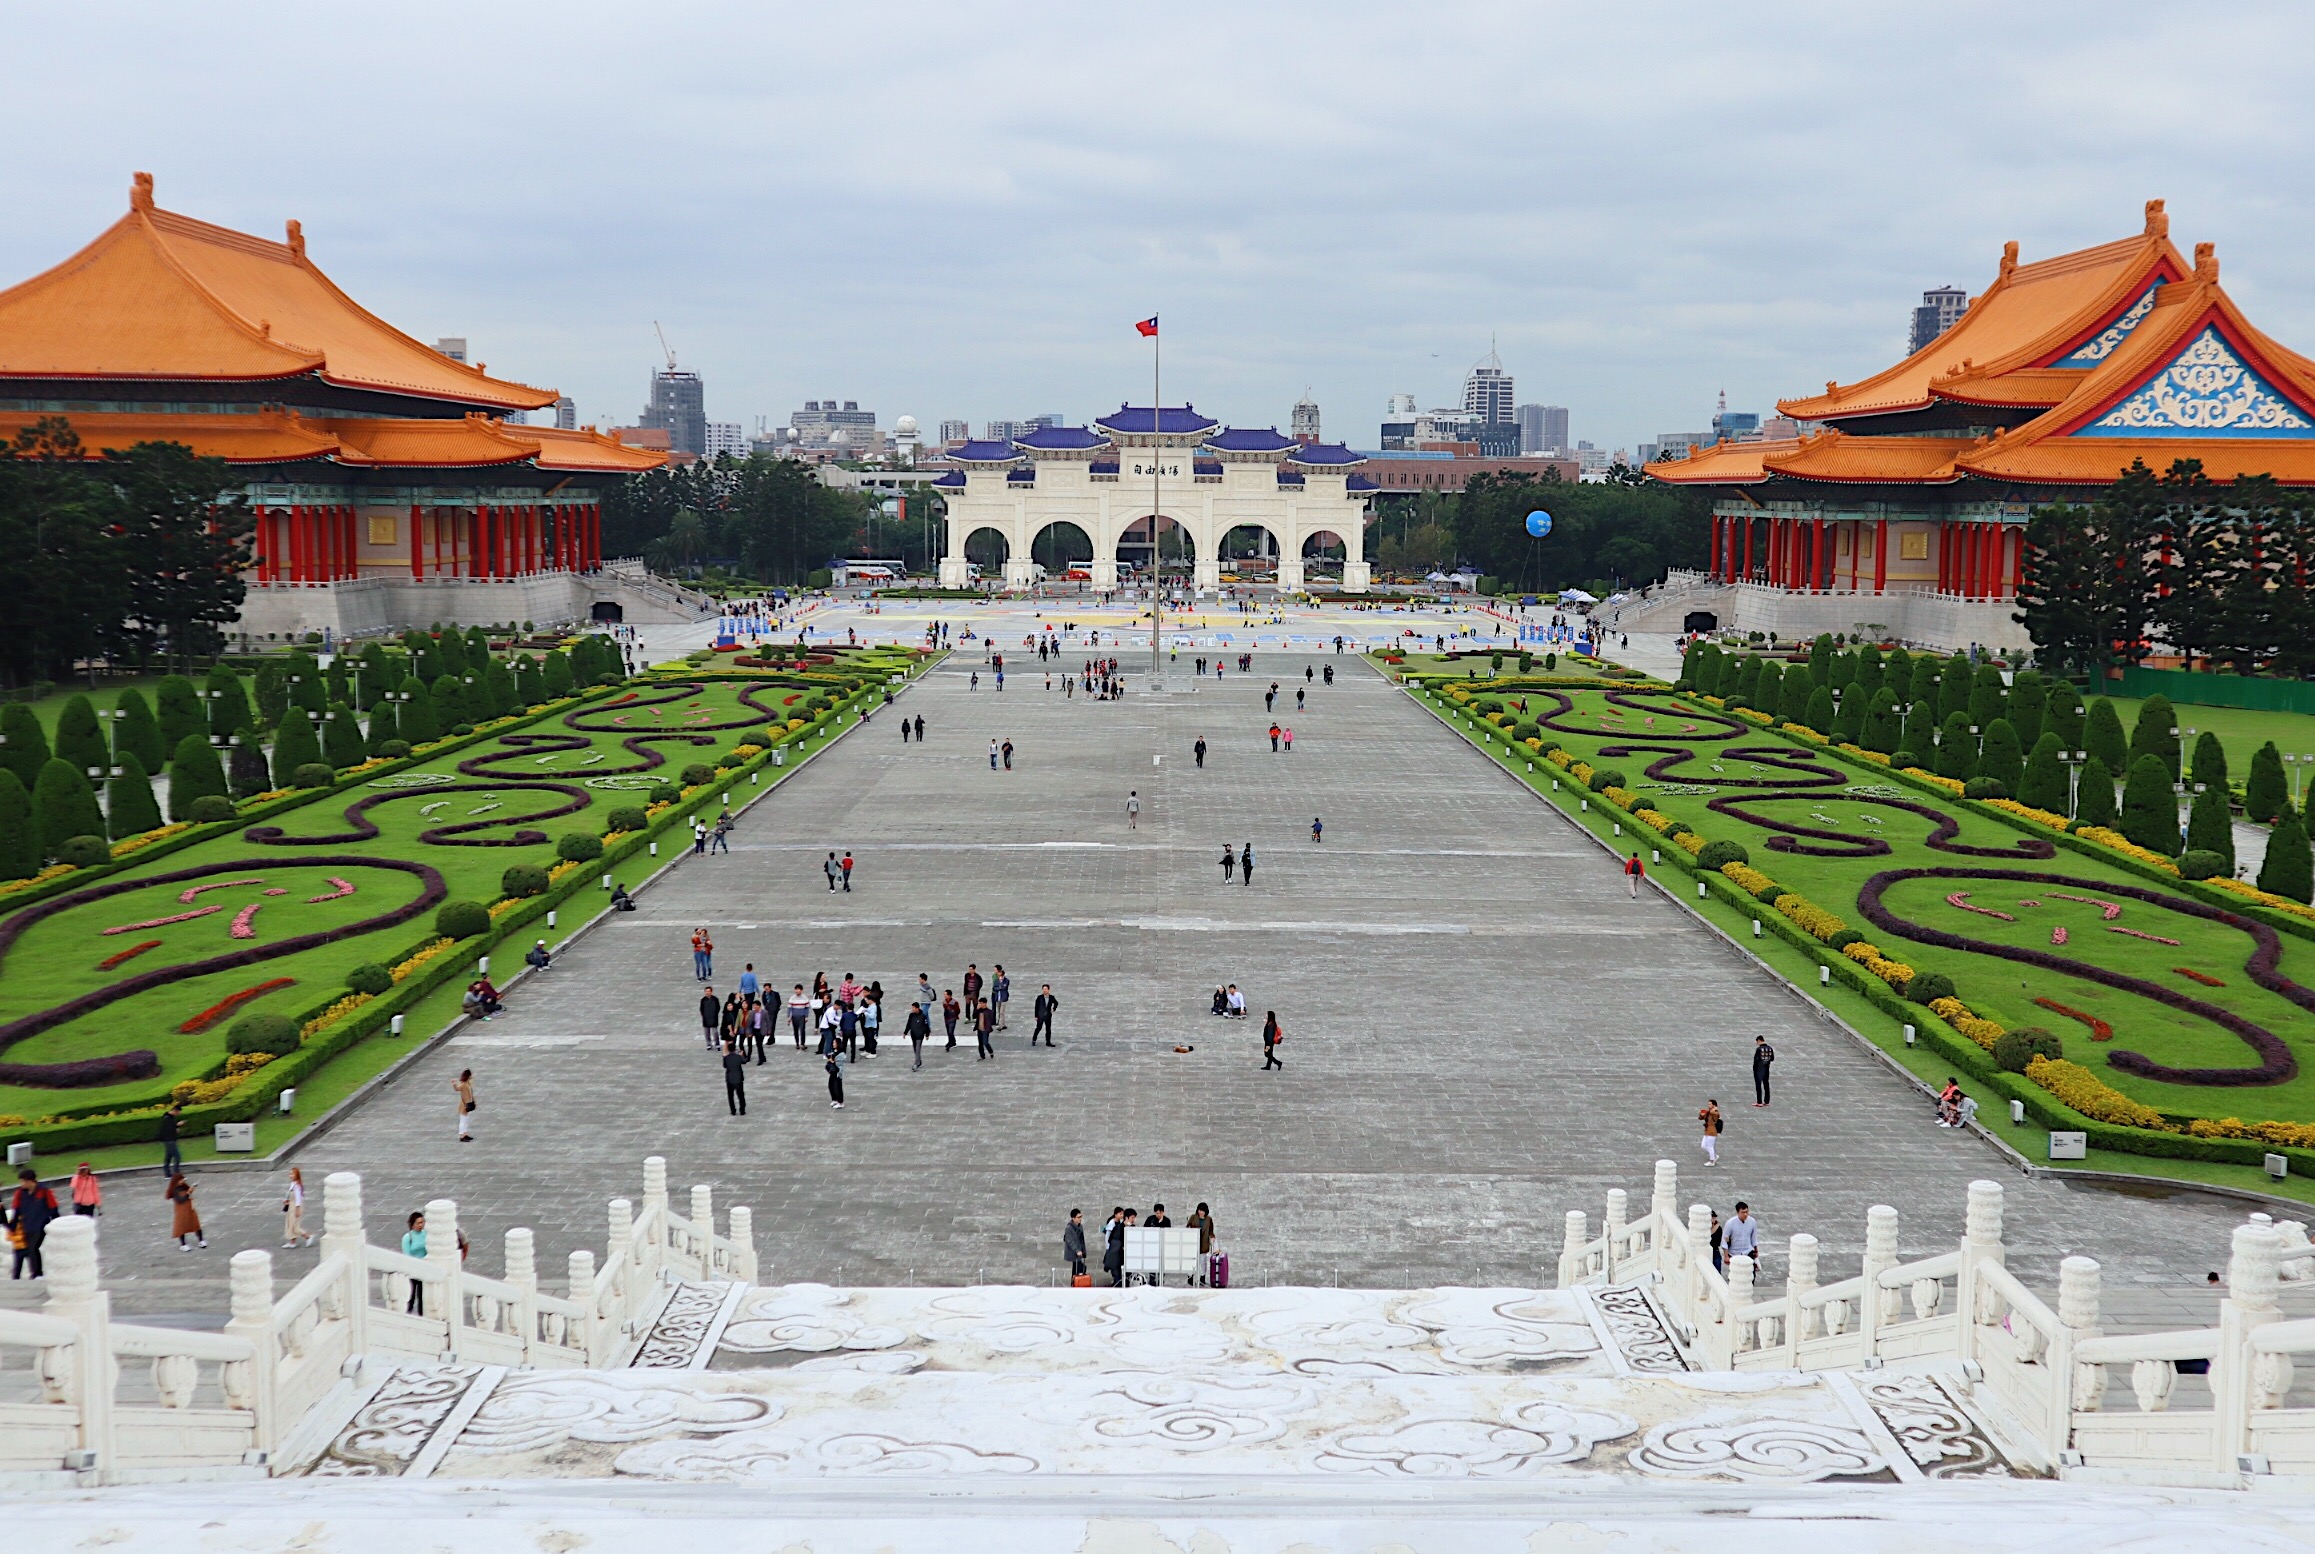 THE CHANG KAI SHEK MEMORIAL HALL COMPLEX. It's huge, isn't it?